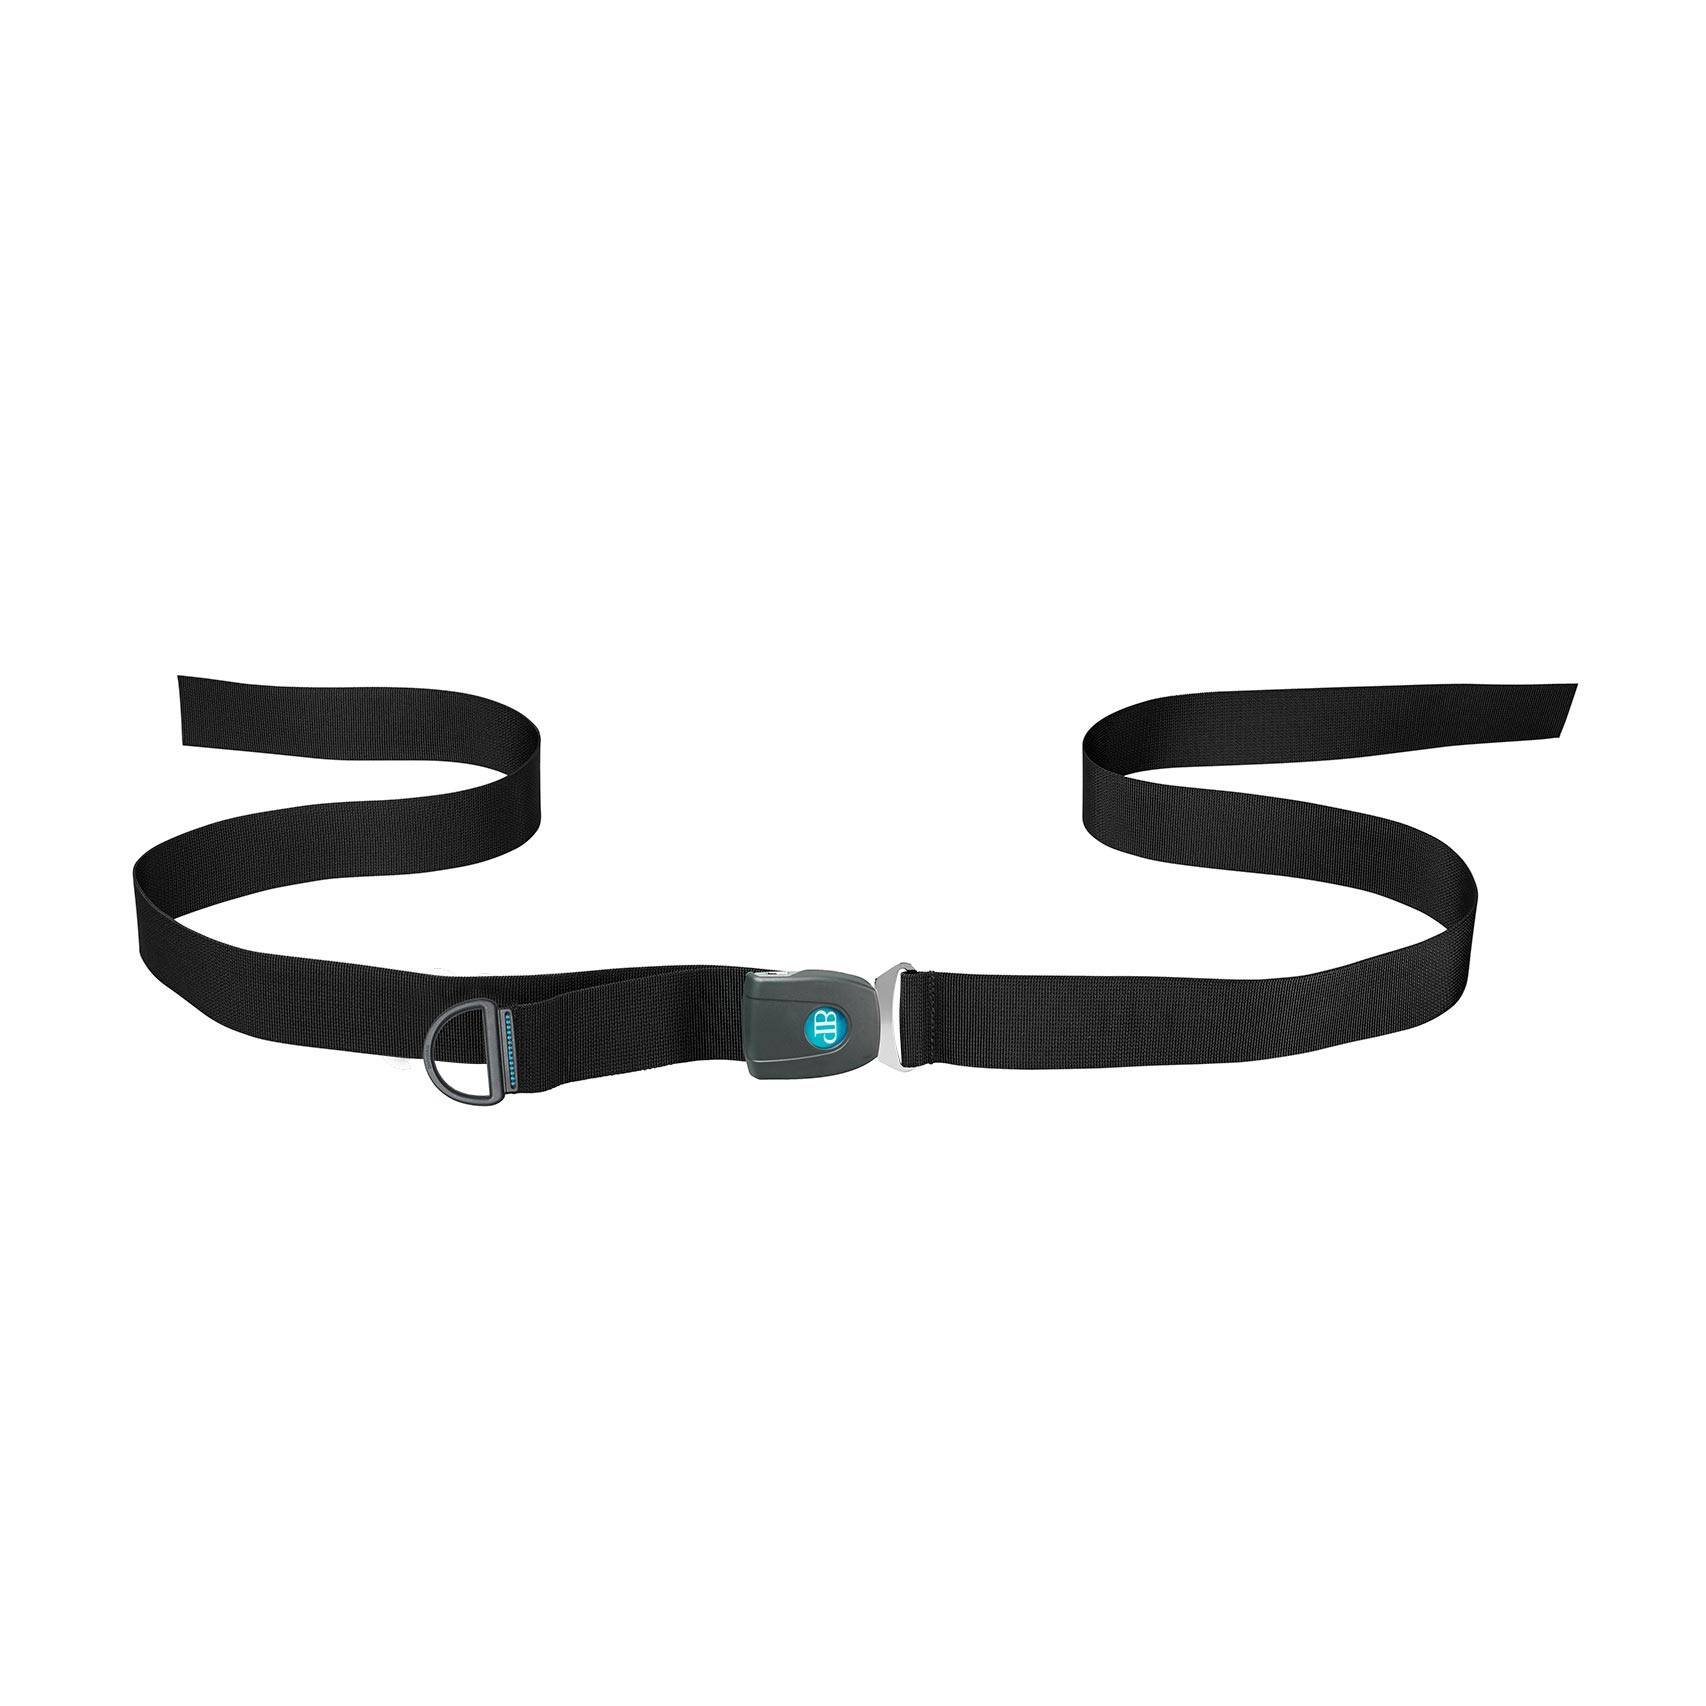 Bodypoint center-pull two point non-padded hip belt with push button buckle - bariatric